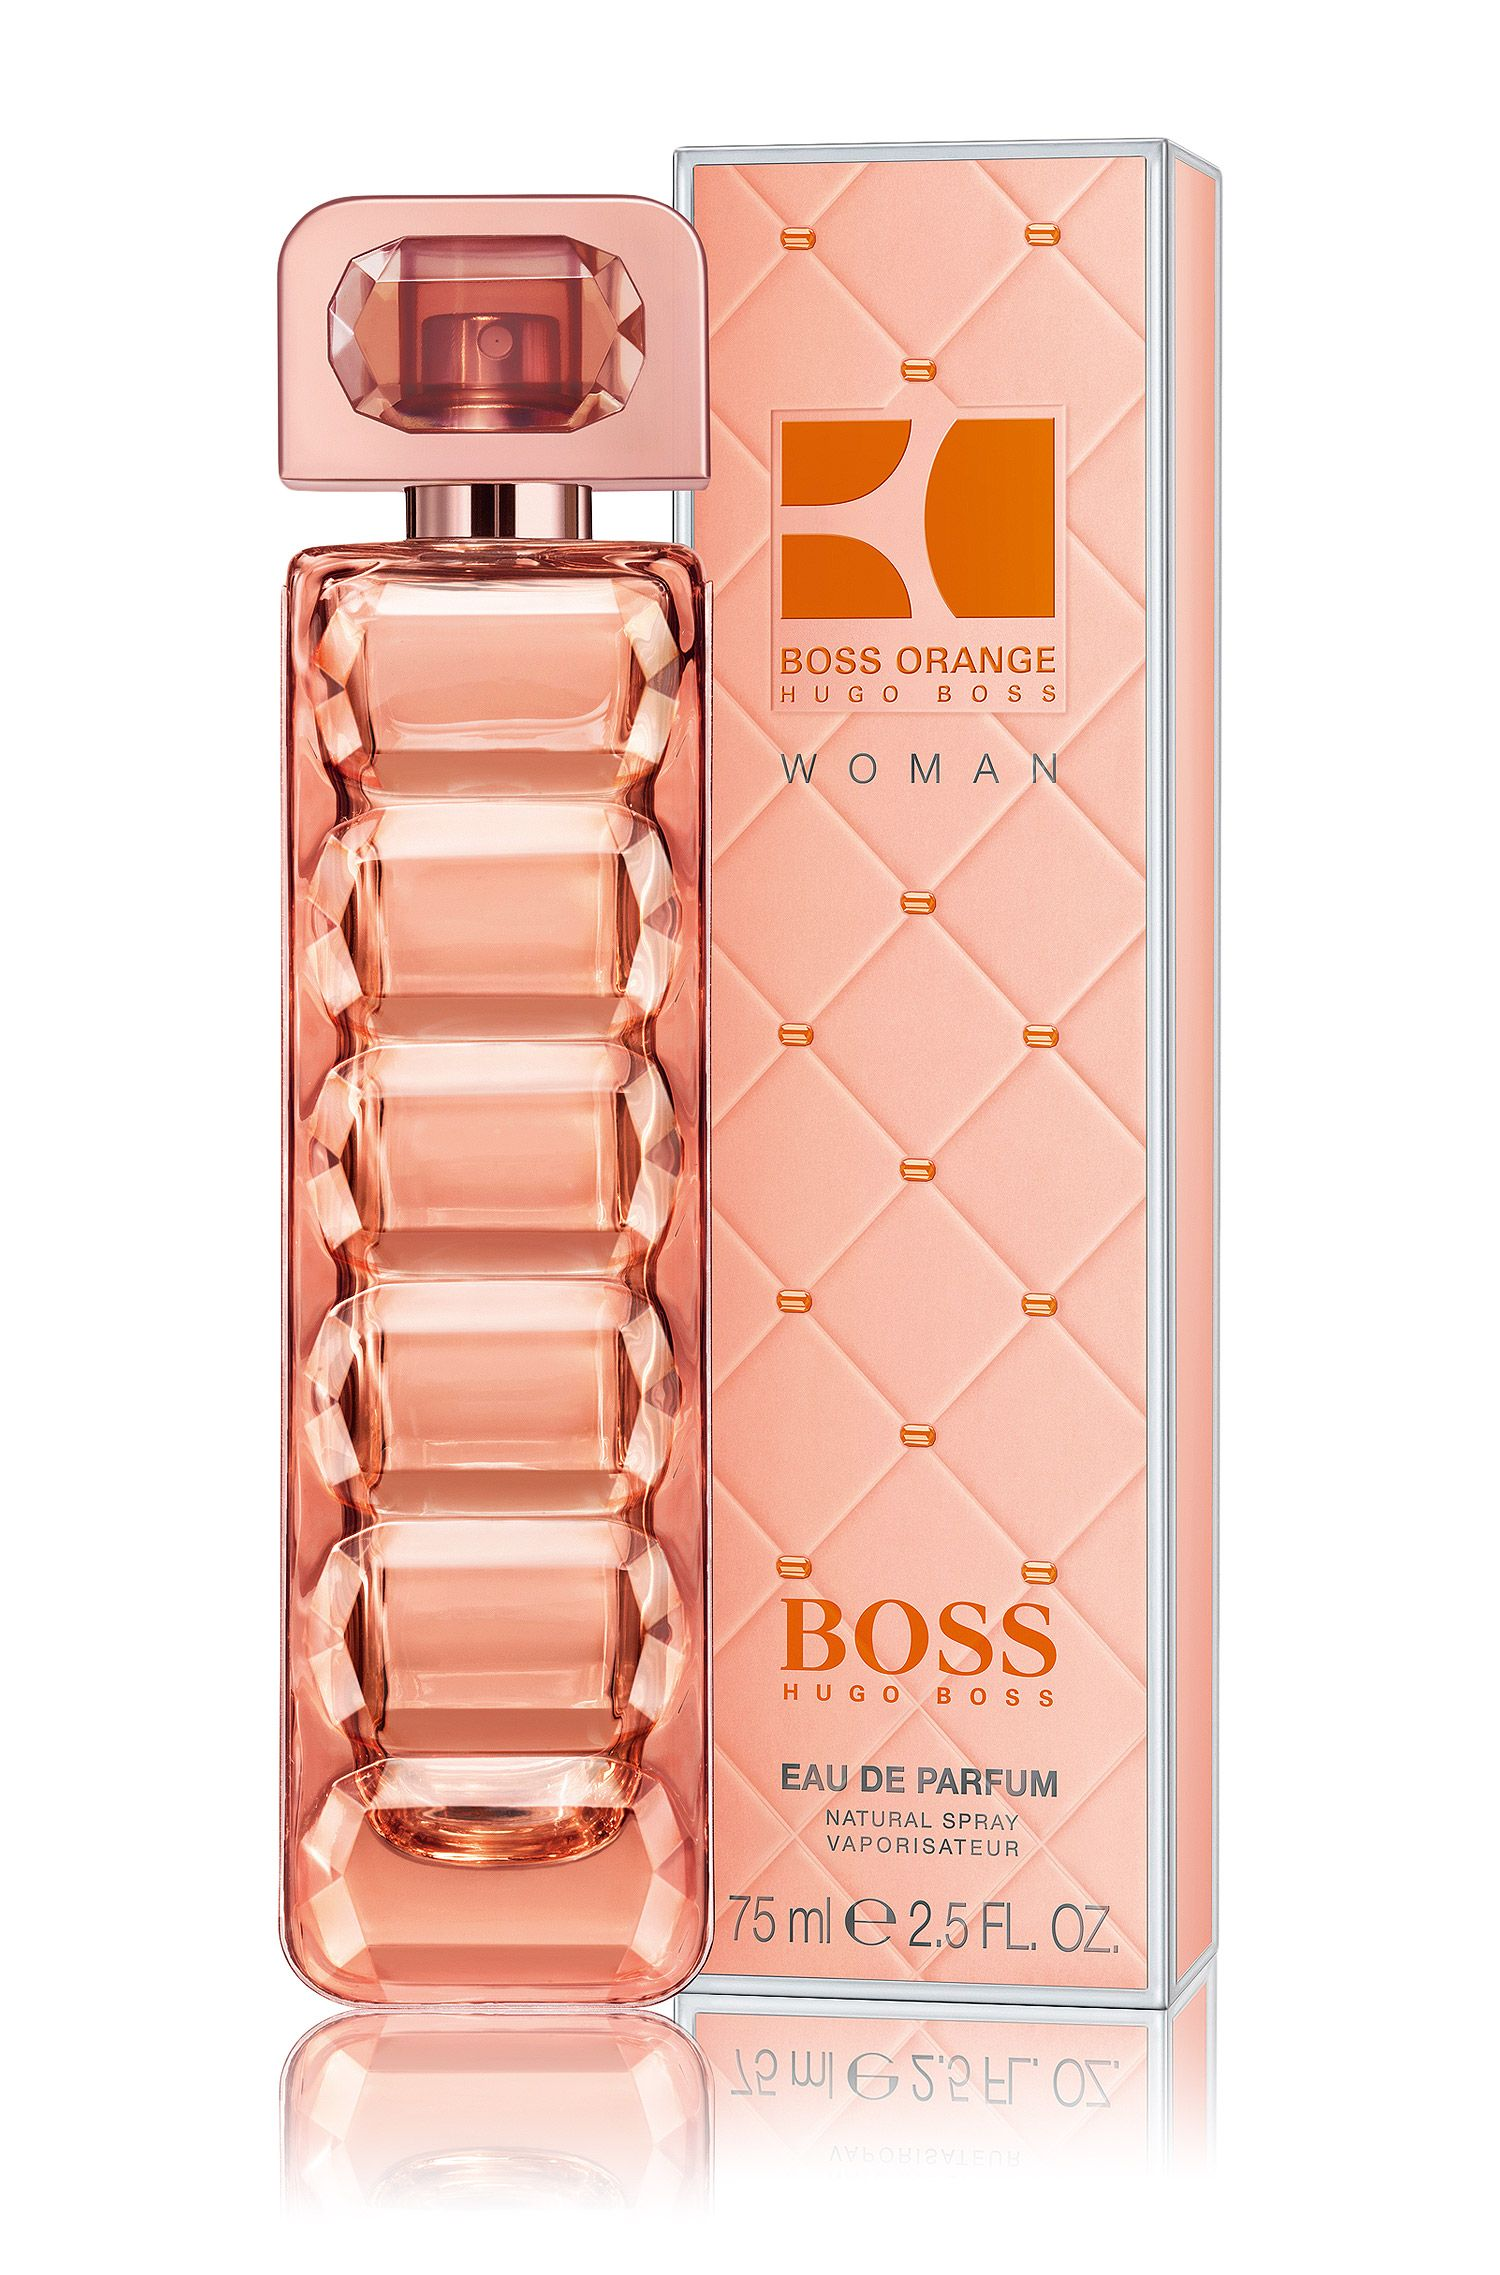 Eau de parfum BOSS Orange Woman 75 ml